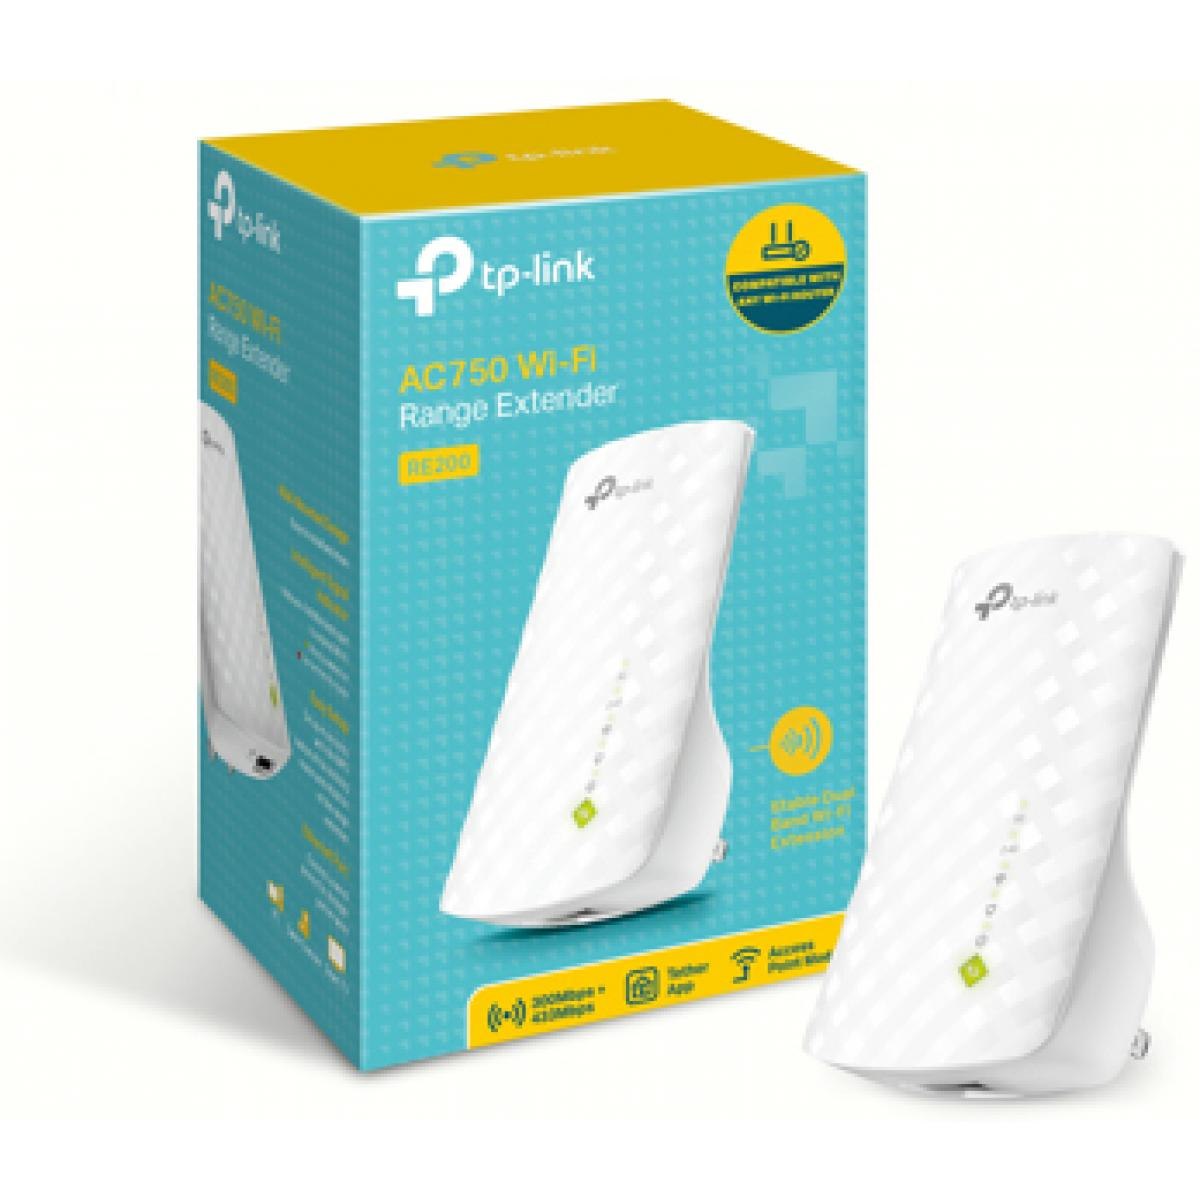 TP-Link Wi-Fi Range Extender photo